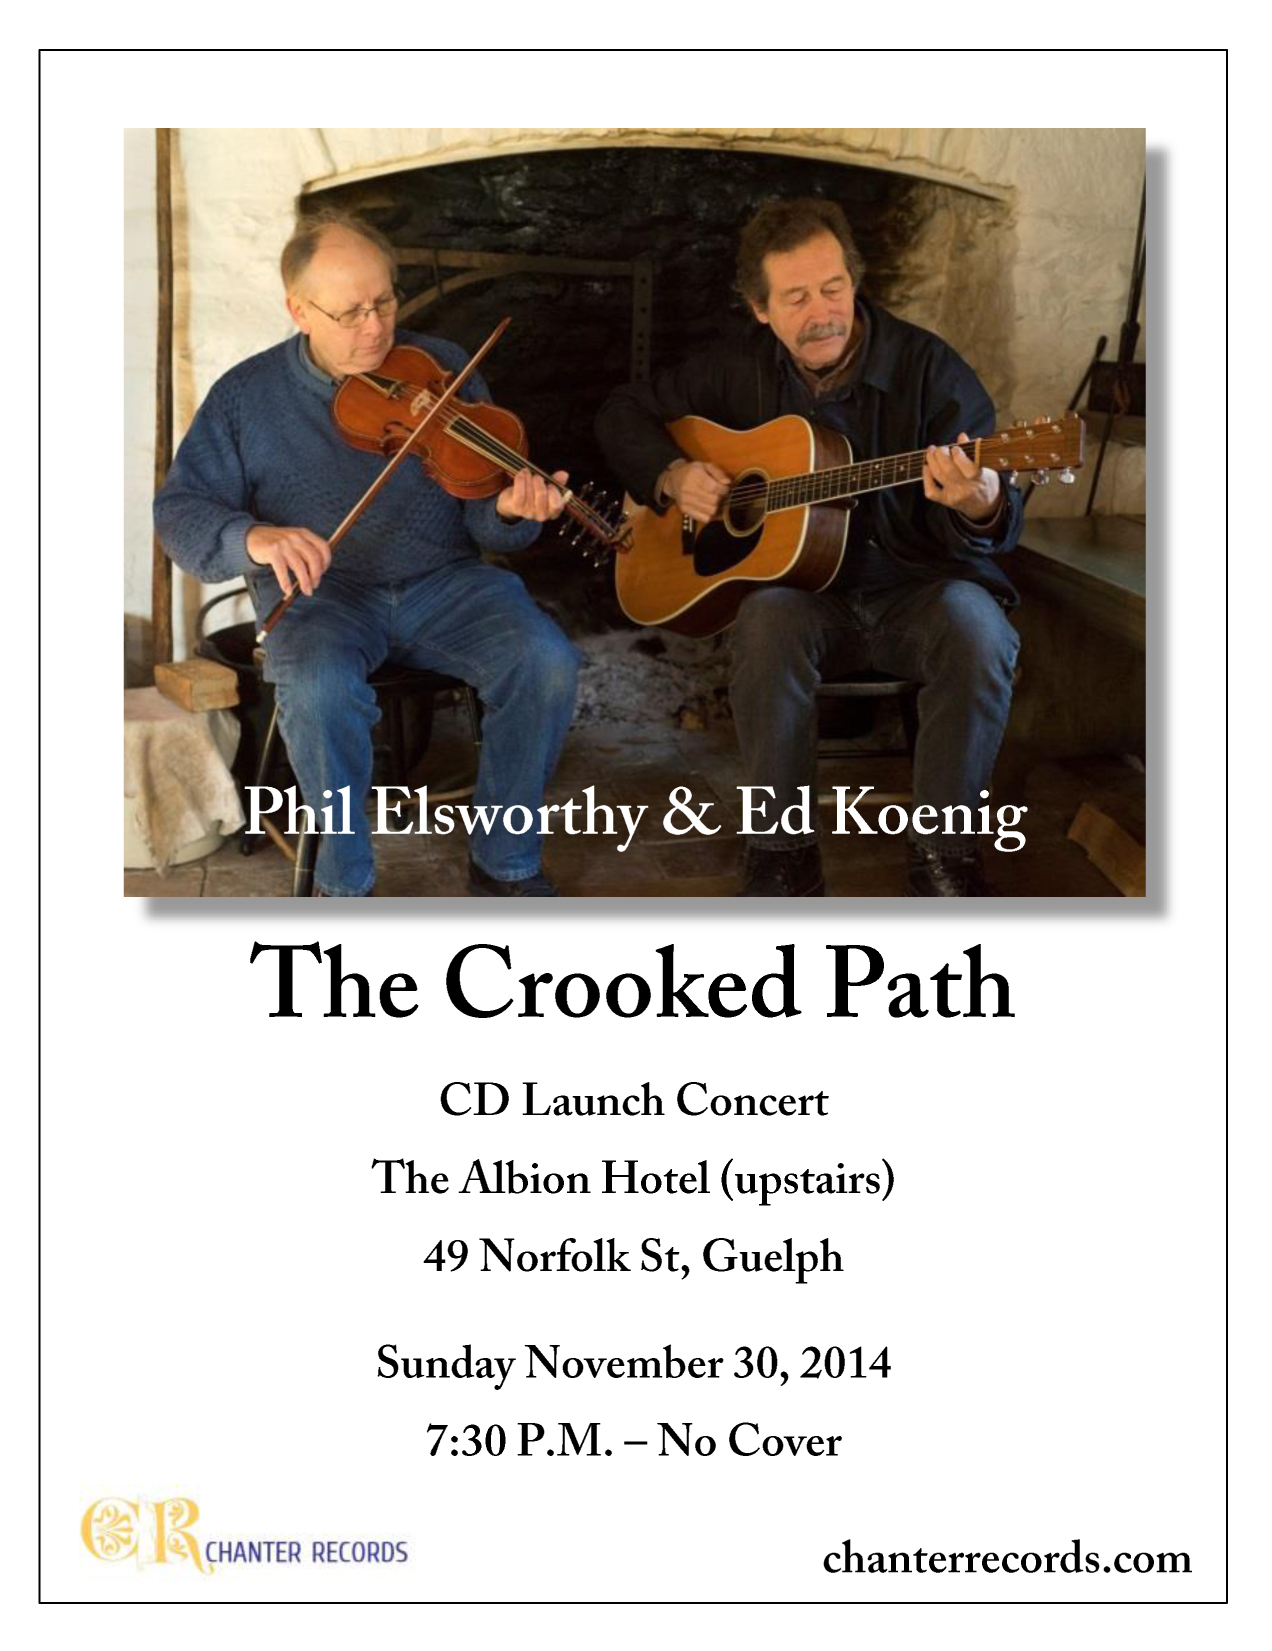 The Crooked Path handout single